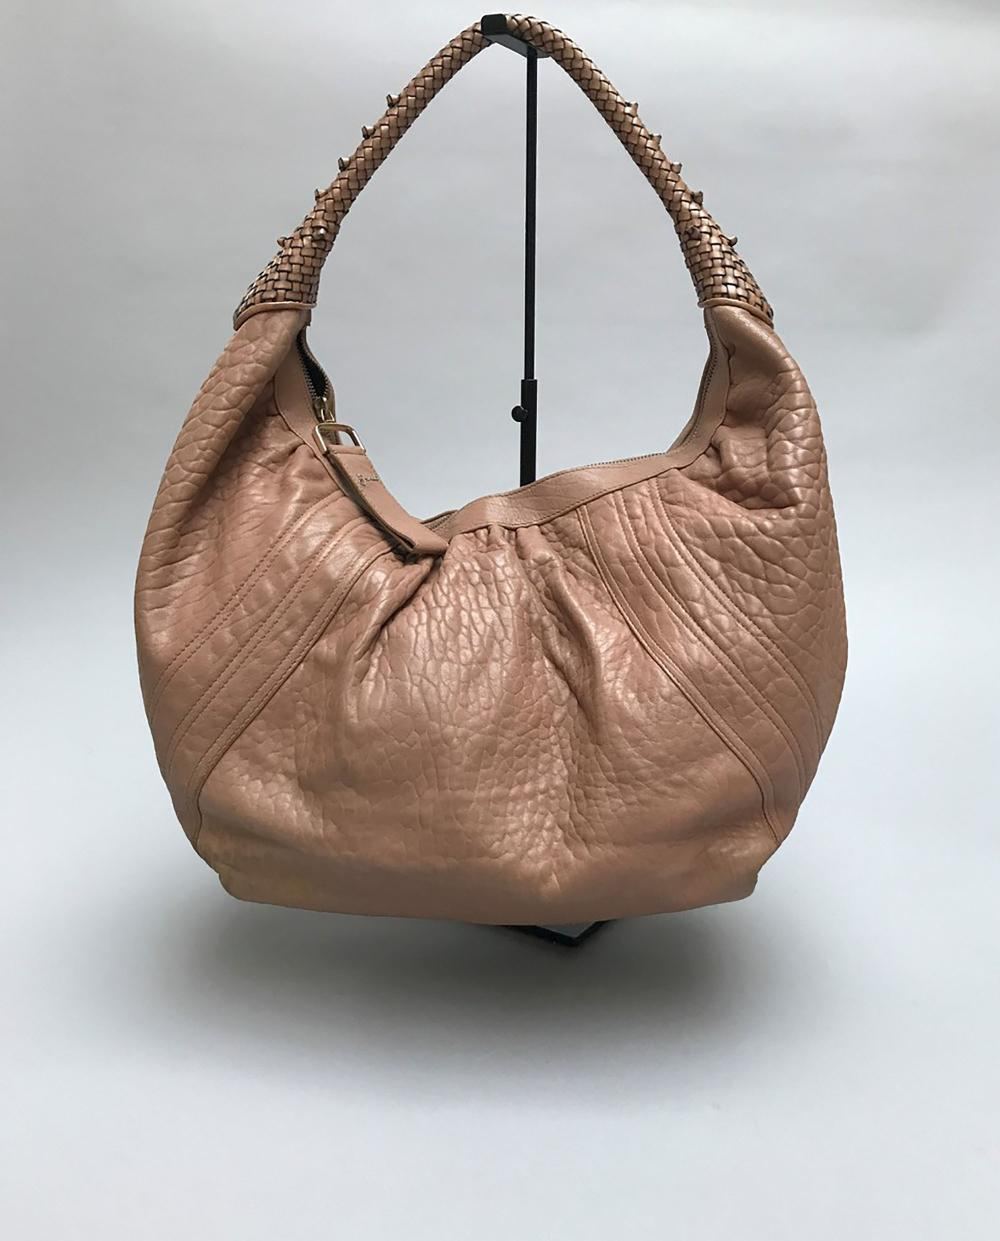 Upzitxwokl Rose Saumon Cuir Grainé Spy Fendi Grand En Sac XZuOkTPi